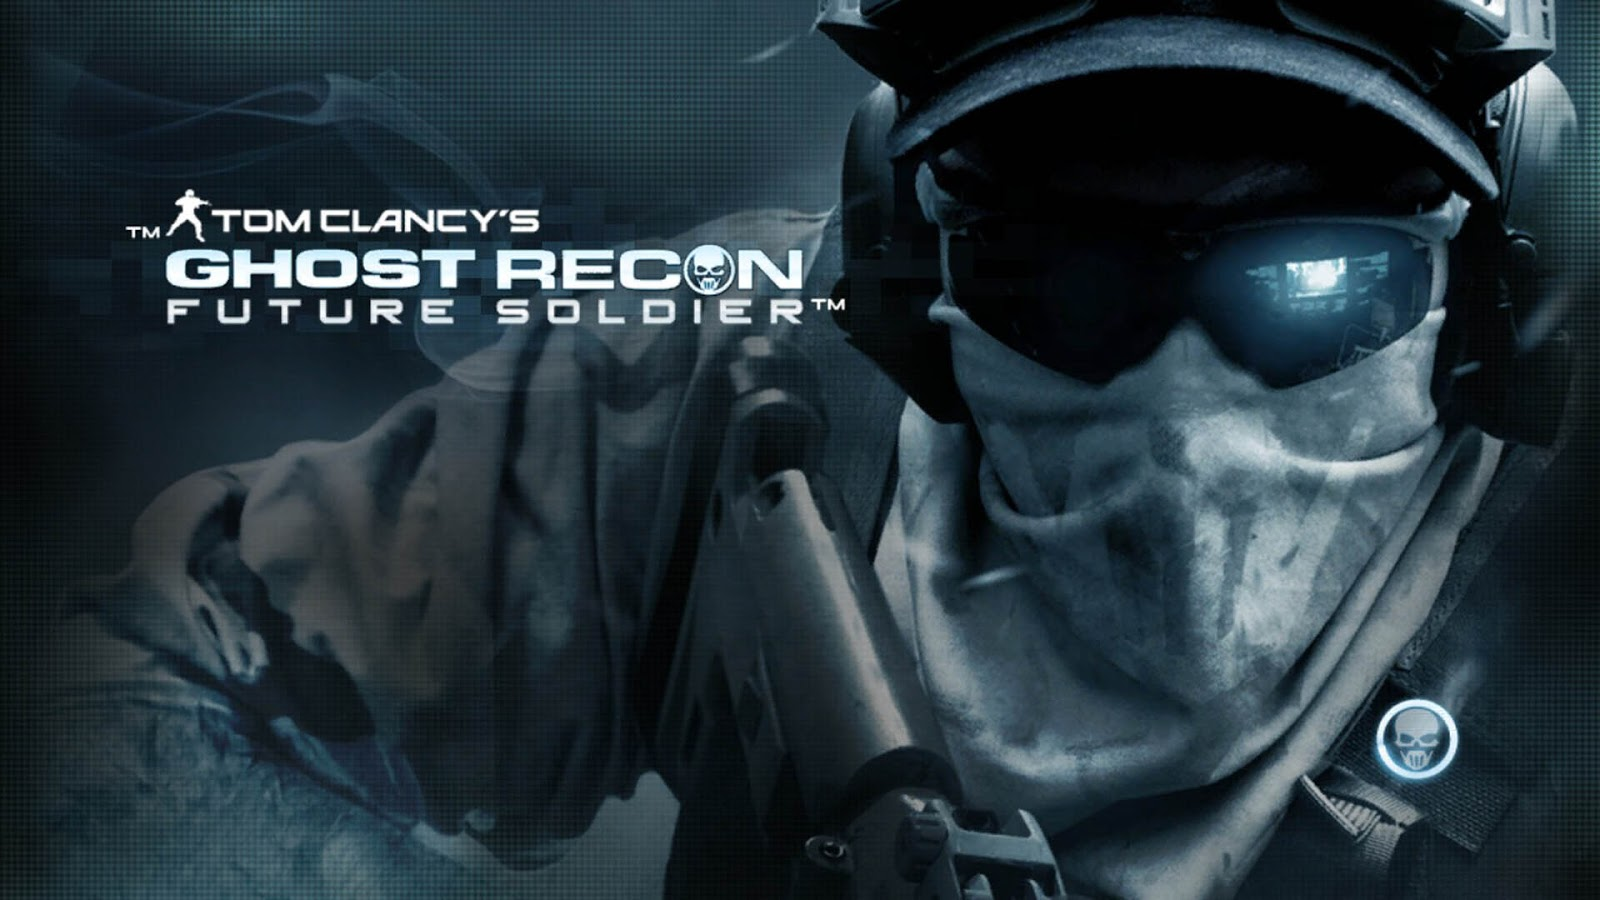 Ghost Recon Future Soldier HD Wallpaper Games Wallpapers 1600x900